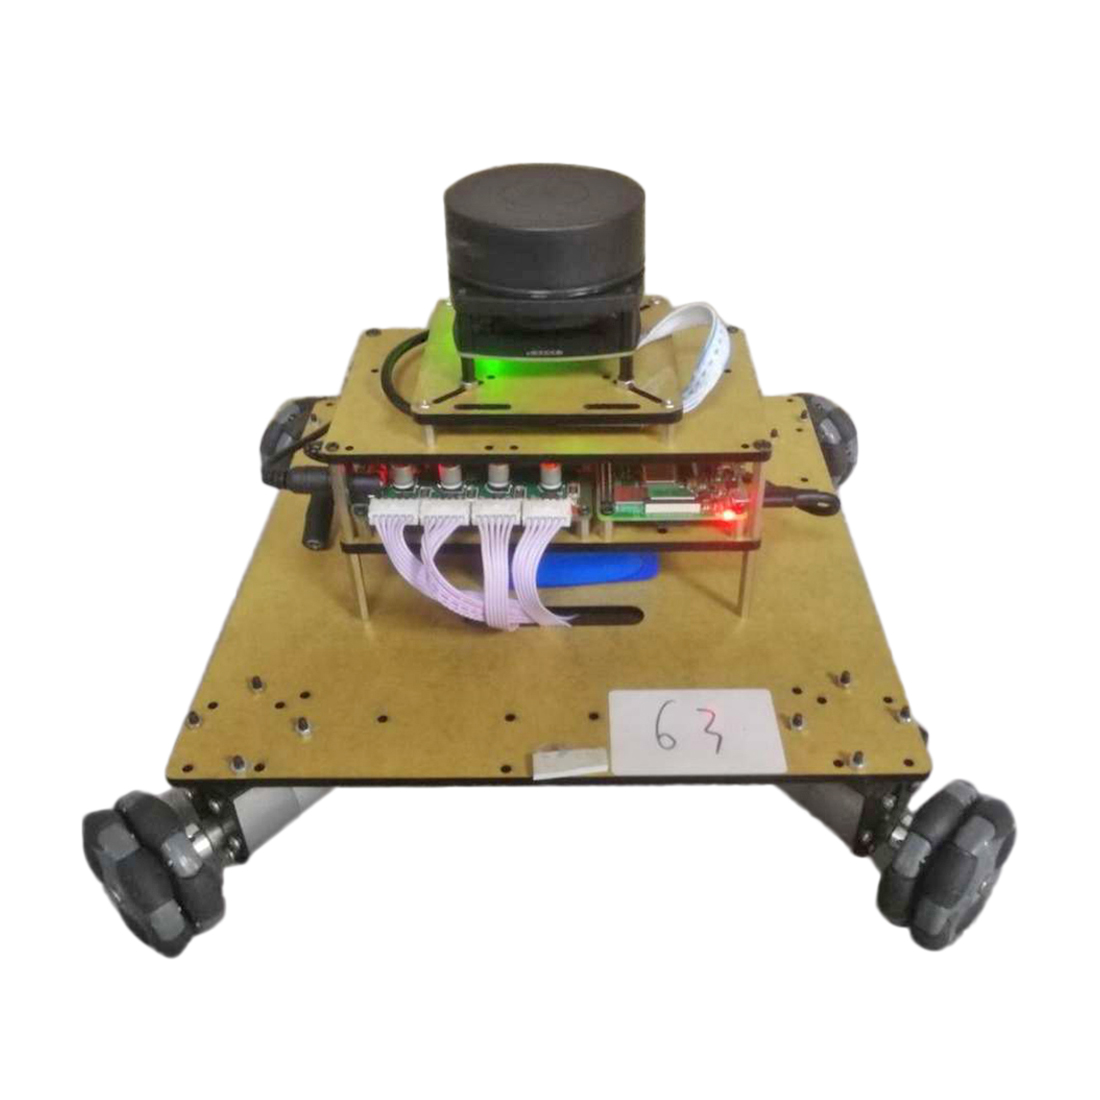 Programmable-Toys-Set Robot Car-Kit Robot-Operating-System Omnidirectional Kids for Adults